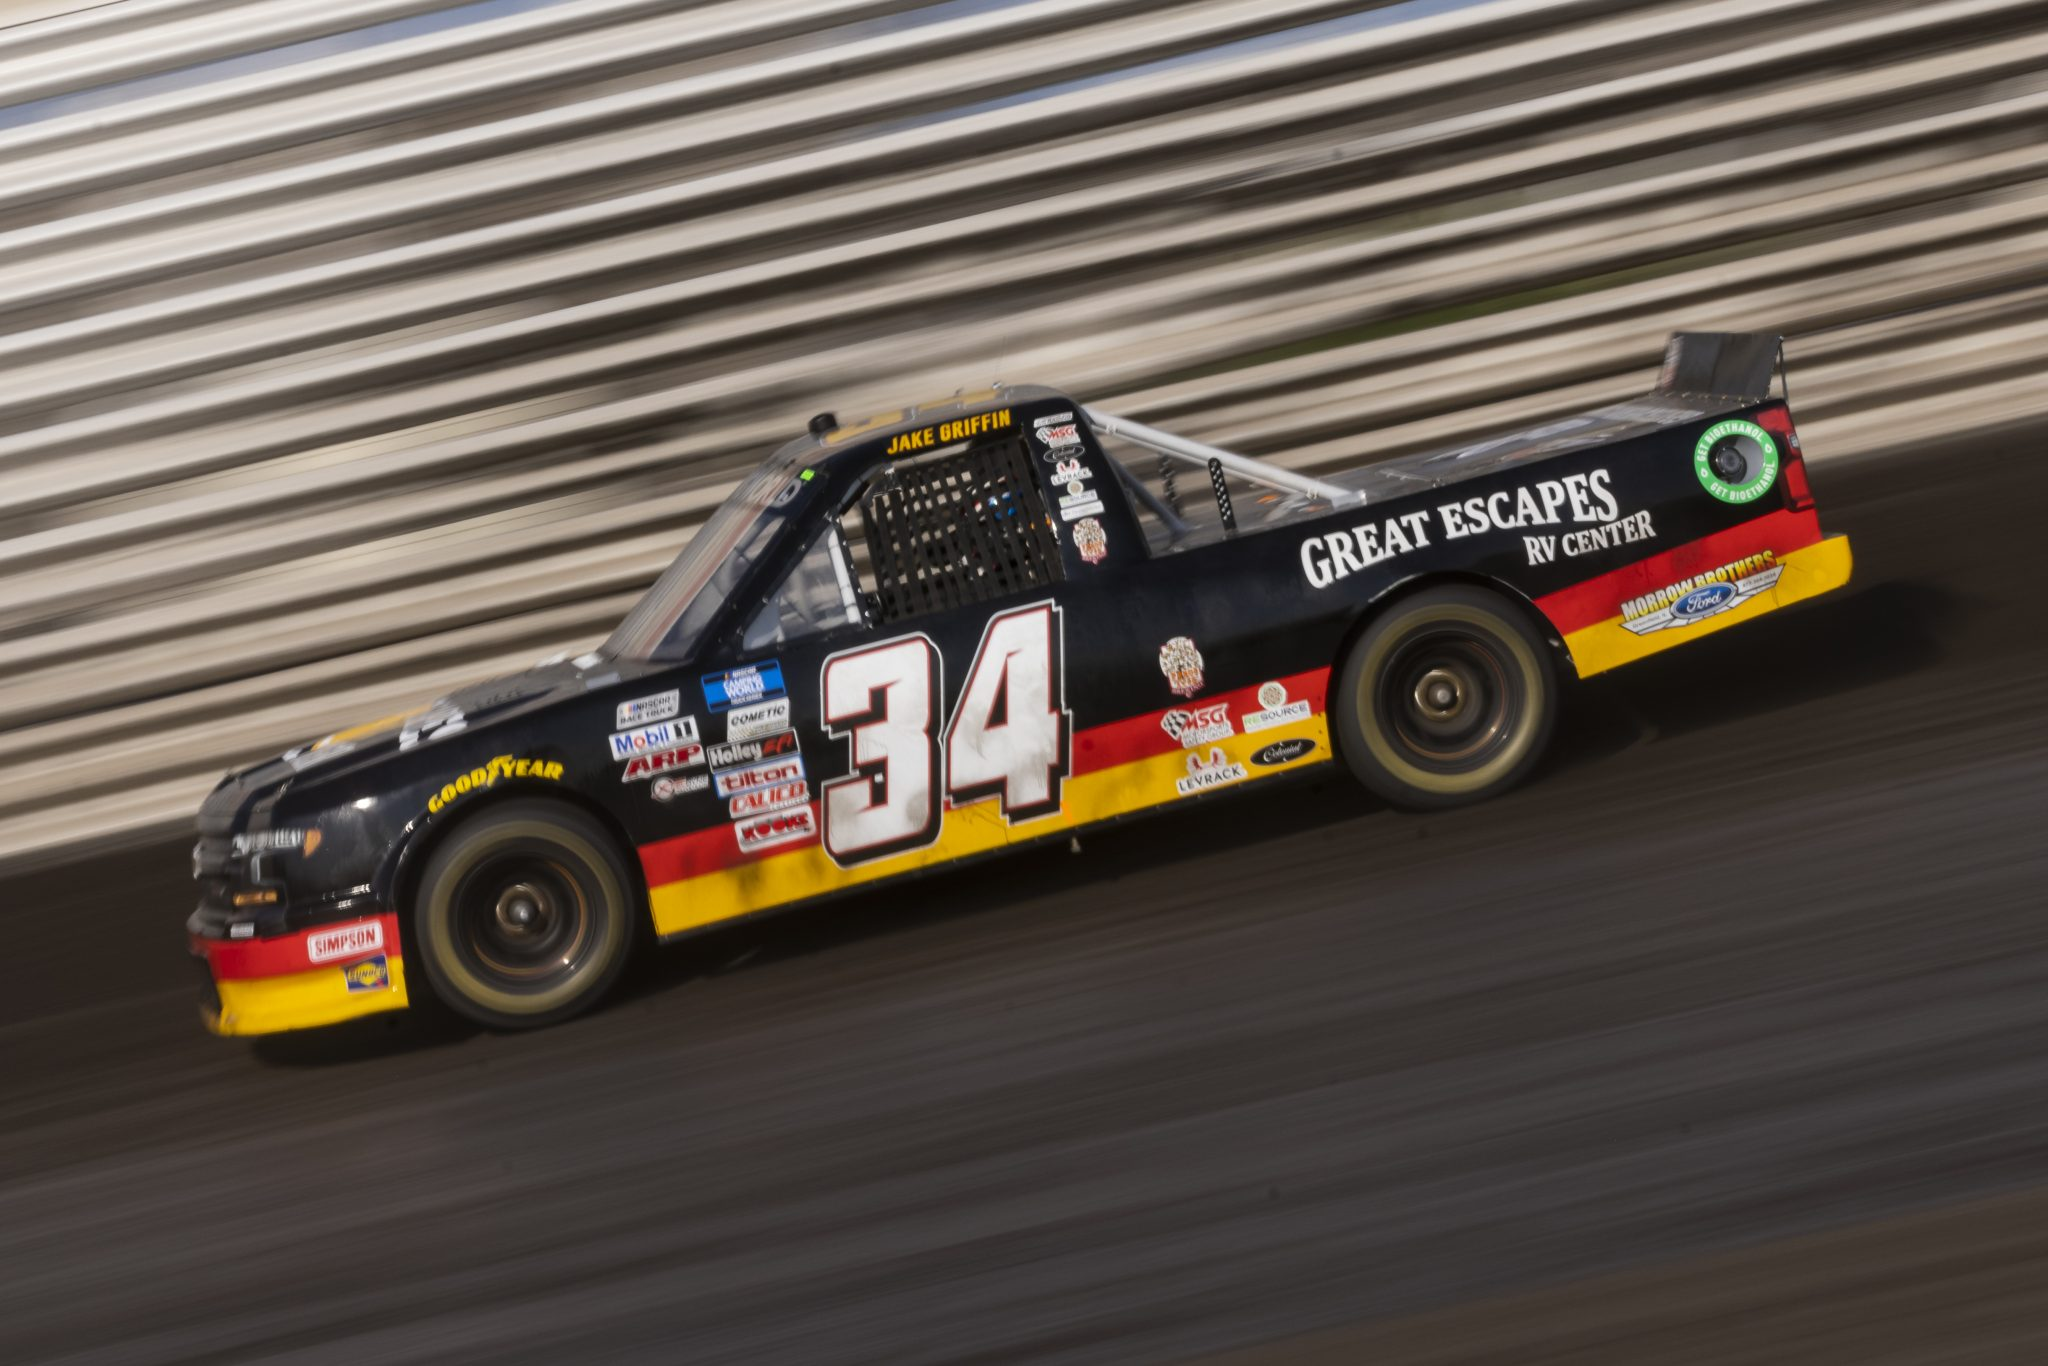 KNOXVILLE, IOWA - JULY 08: Jake Griffin, driver of the #34 Great Escapes RV Center Chevrolet, drives during practice for the NASCAR Camping World Truck Series Corn Belt 150 presented by Premier Chevy Dealers at Knoxville Raceway on July 08, 2021 in Knoxville, Iowa. (Photo by James Gilbert/Getty Images) | Getty Images